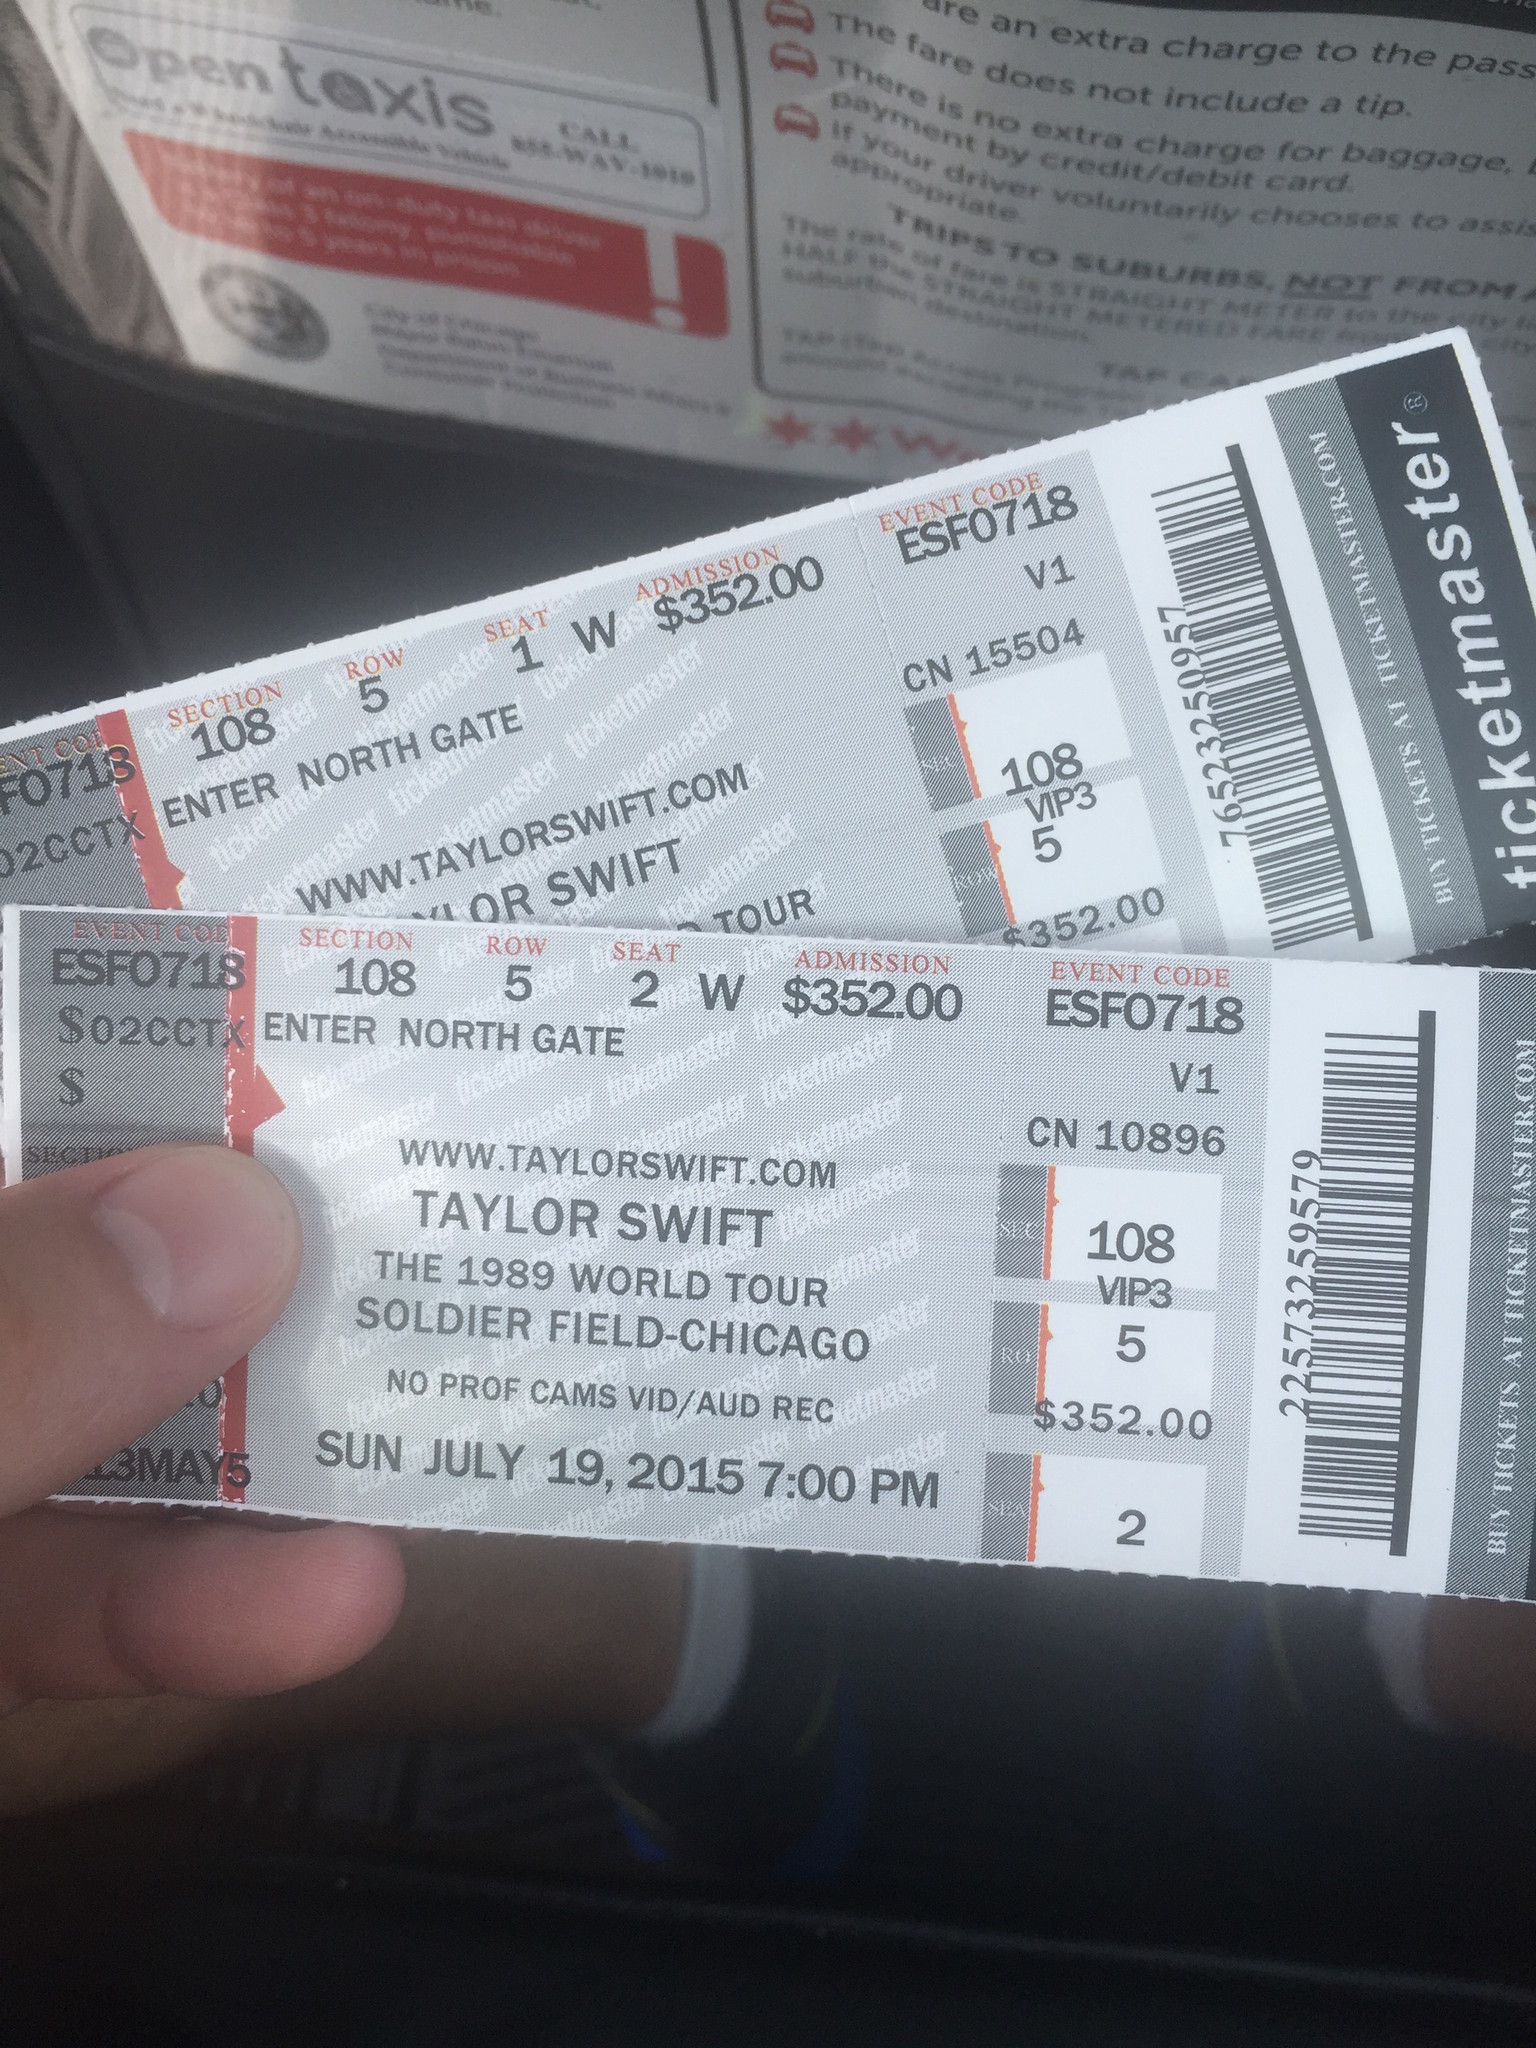 My friends accidentally bought fake Taylor Swift tickets ...